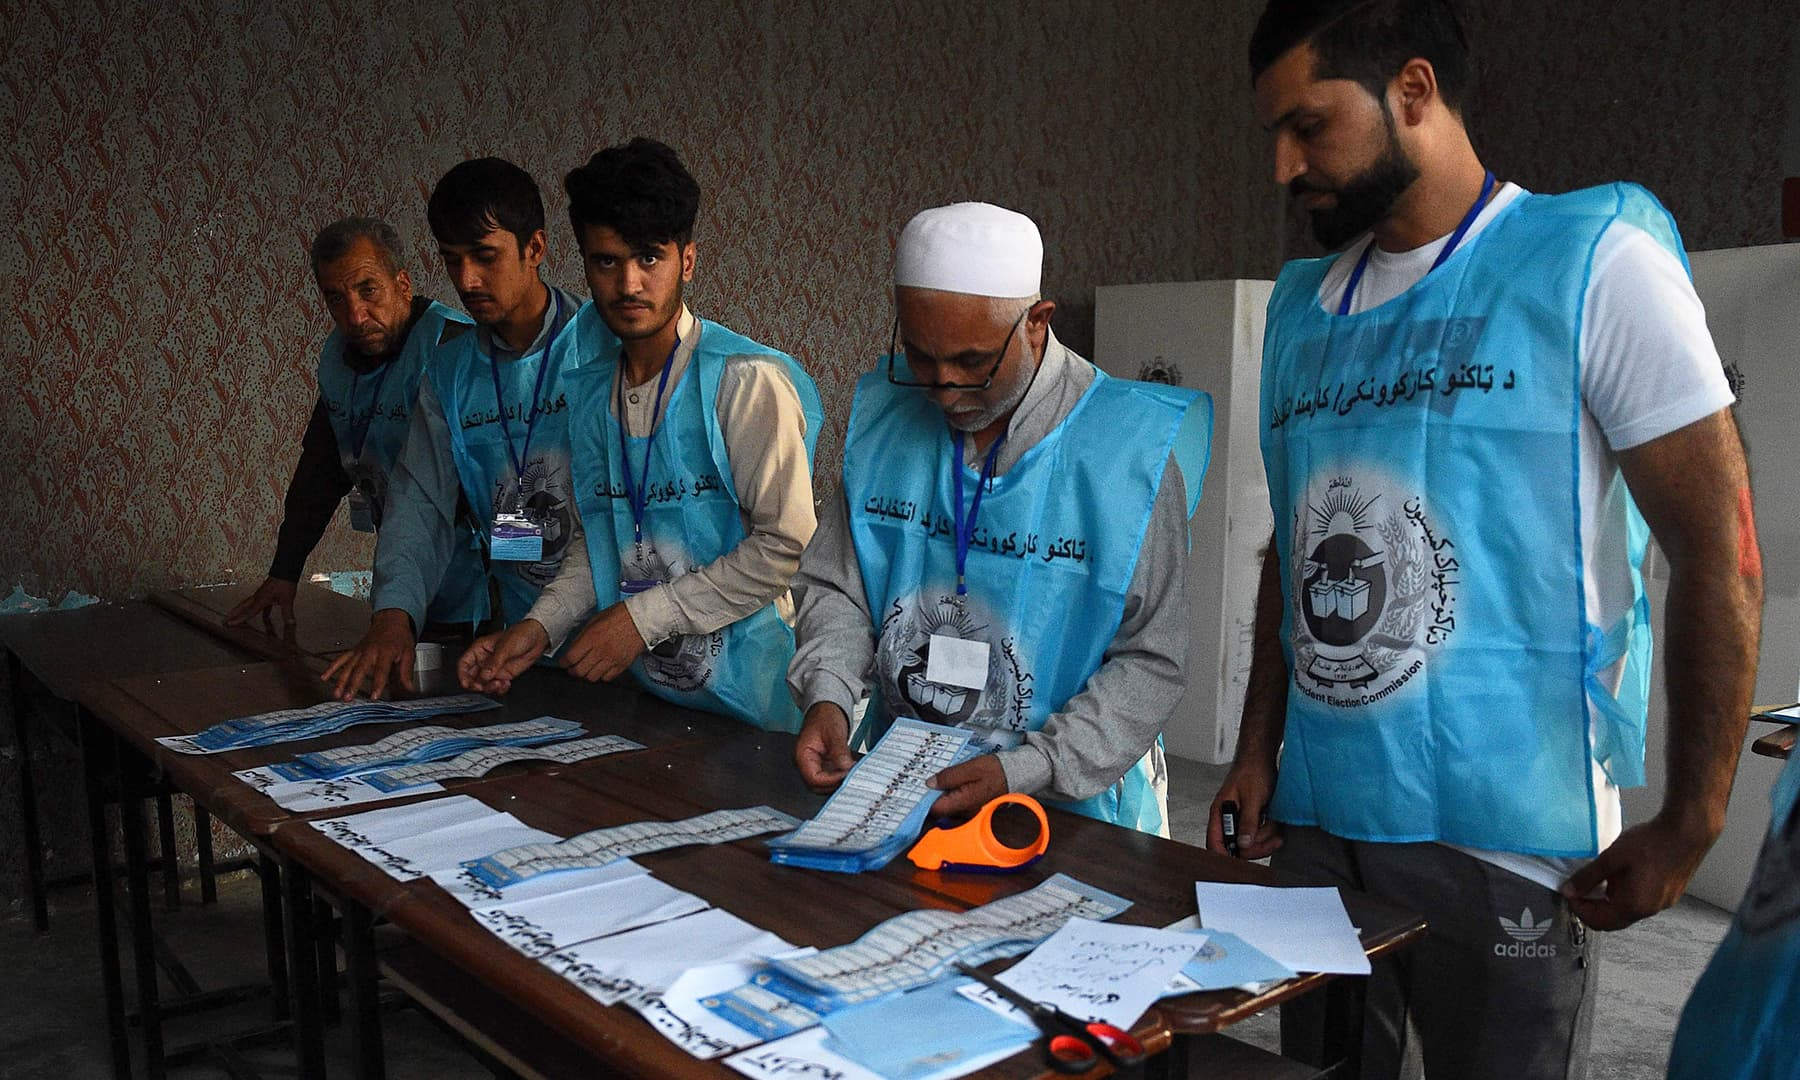 Afghan Independent Election Commission (IEC) officials count ballot papers after the polling station was closed, in Mazar-i-Sharif. — AFP